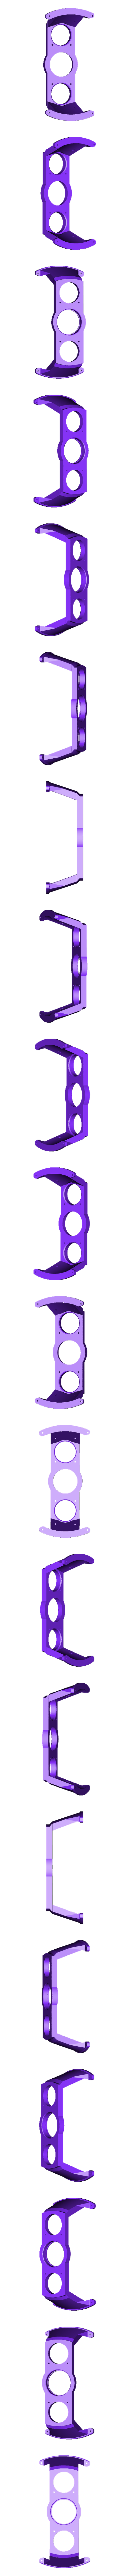 BRG-Body-Case01.stl Download STL file Main-Gear-Box, for Helicopter, Full metal bearing type • 3D printing object, konchan77